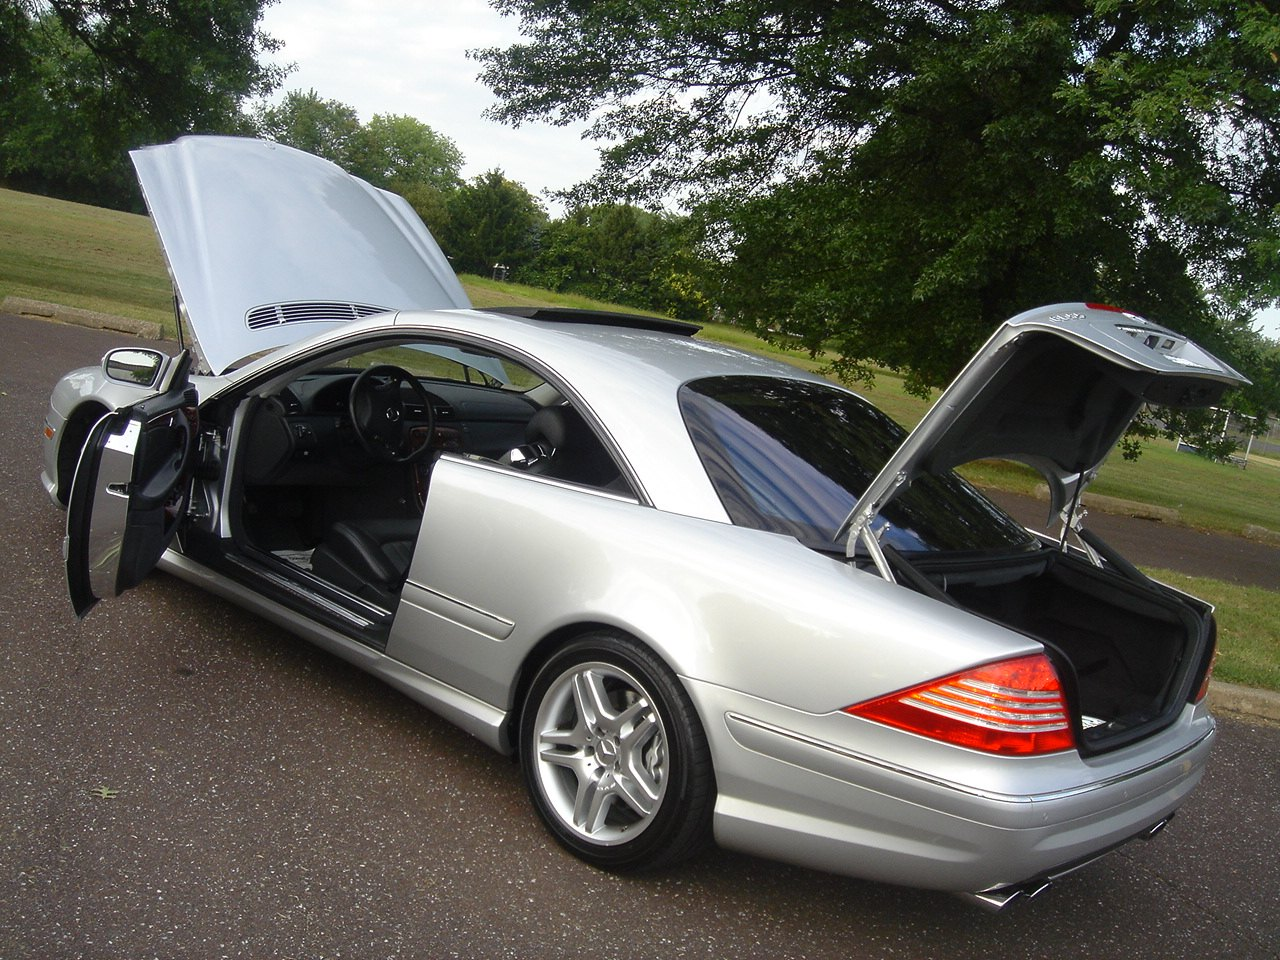 Free Carfax Check >> 2003 MBZ CL55 AMG Kompressor - 493 HP - CHEAP - Mercedes